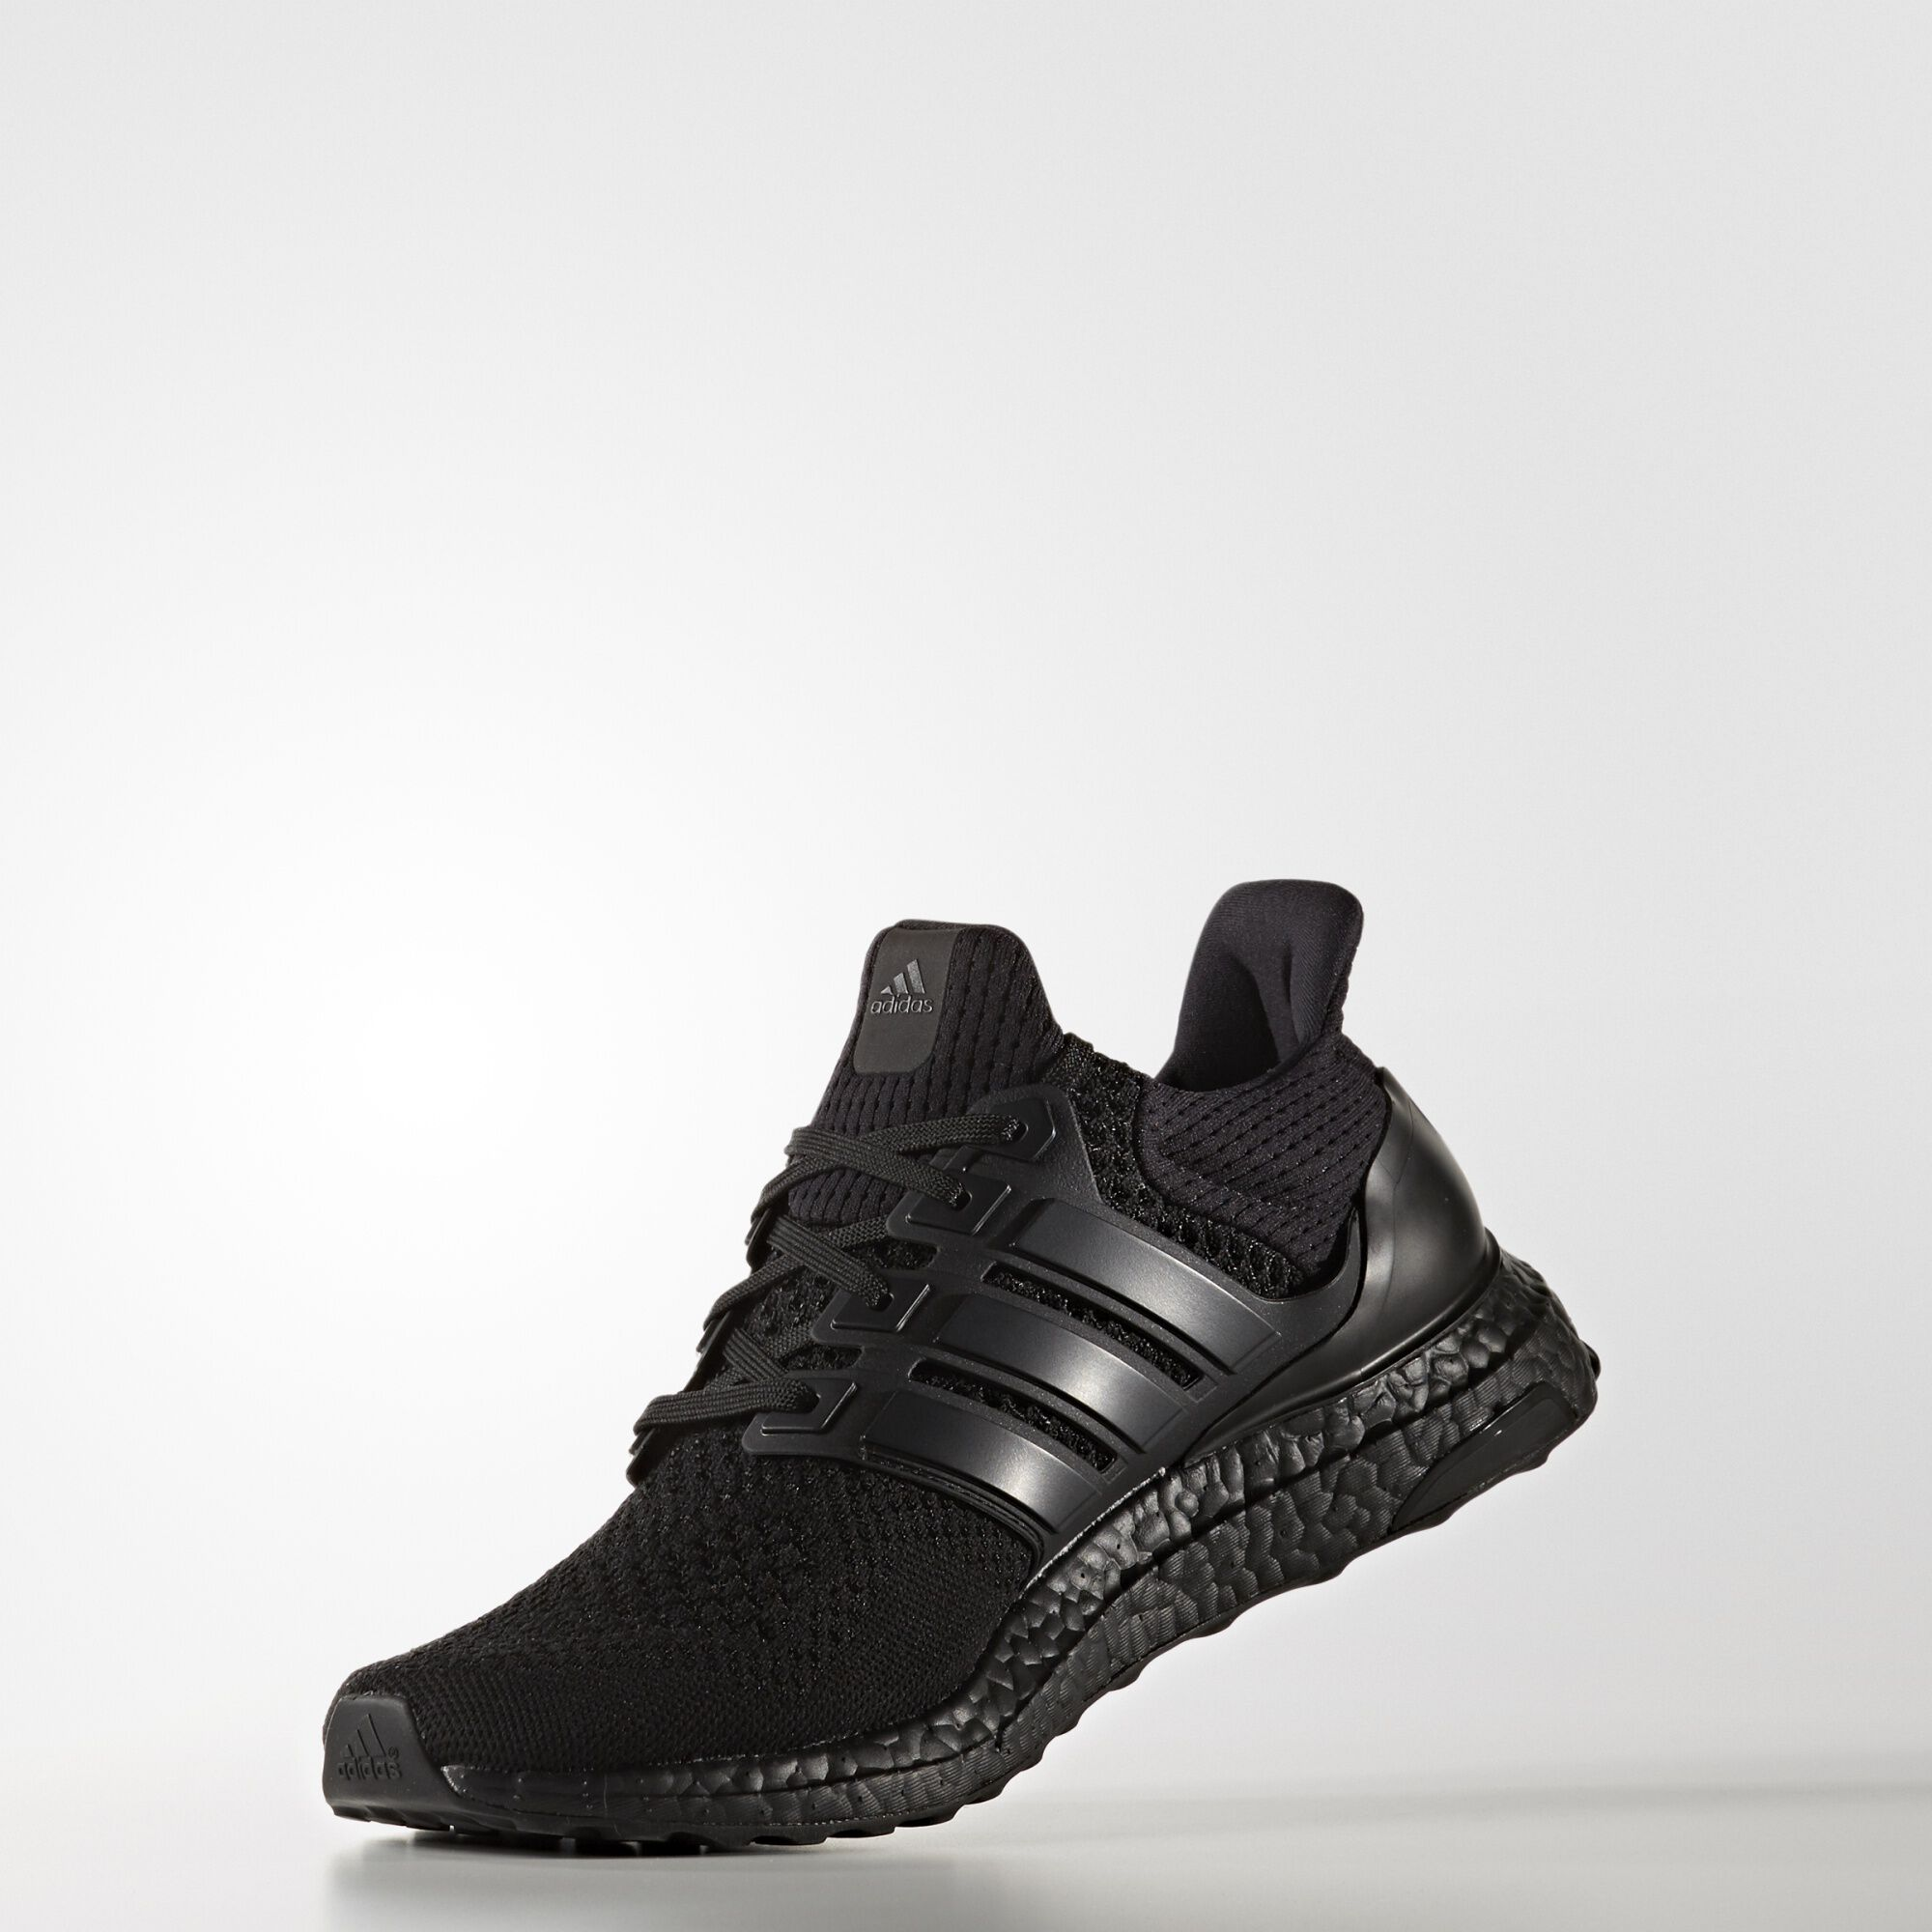 9e37d38e StockX 12 Months Historical Last sale: $449 (830 sold) Average price: $404.  Highest: $777. Lowest: $260. adidas: Ultra Boost 3.0 'Triple Black'